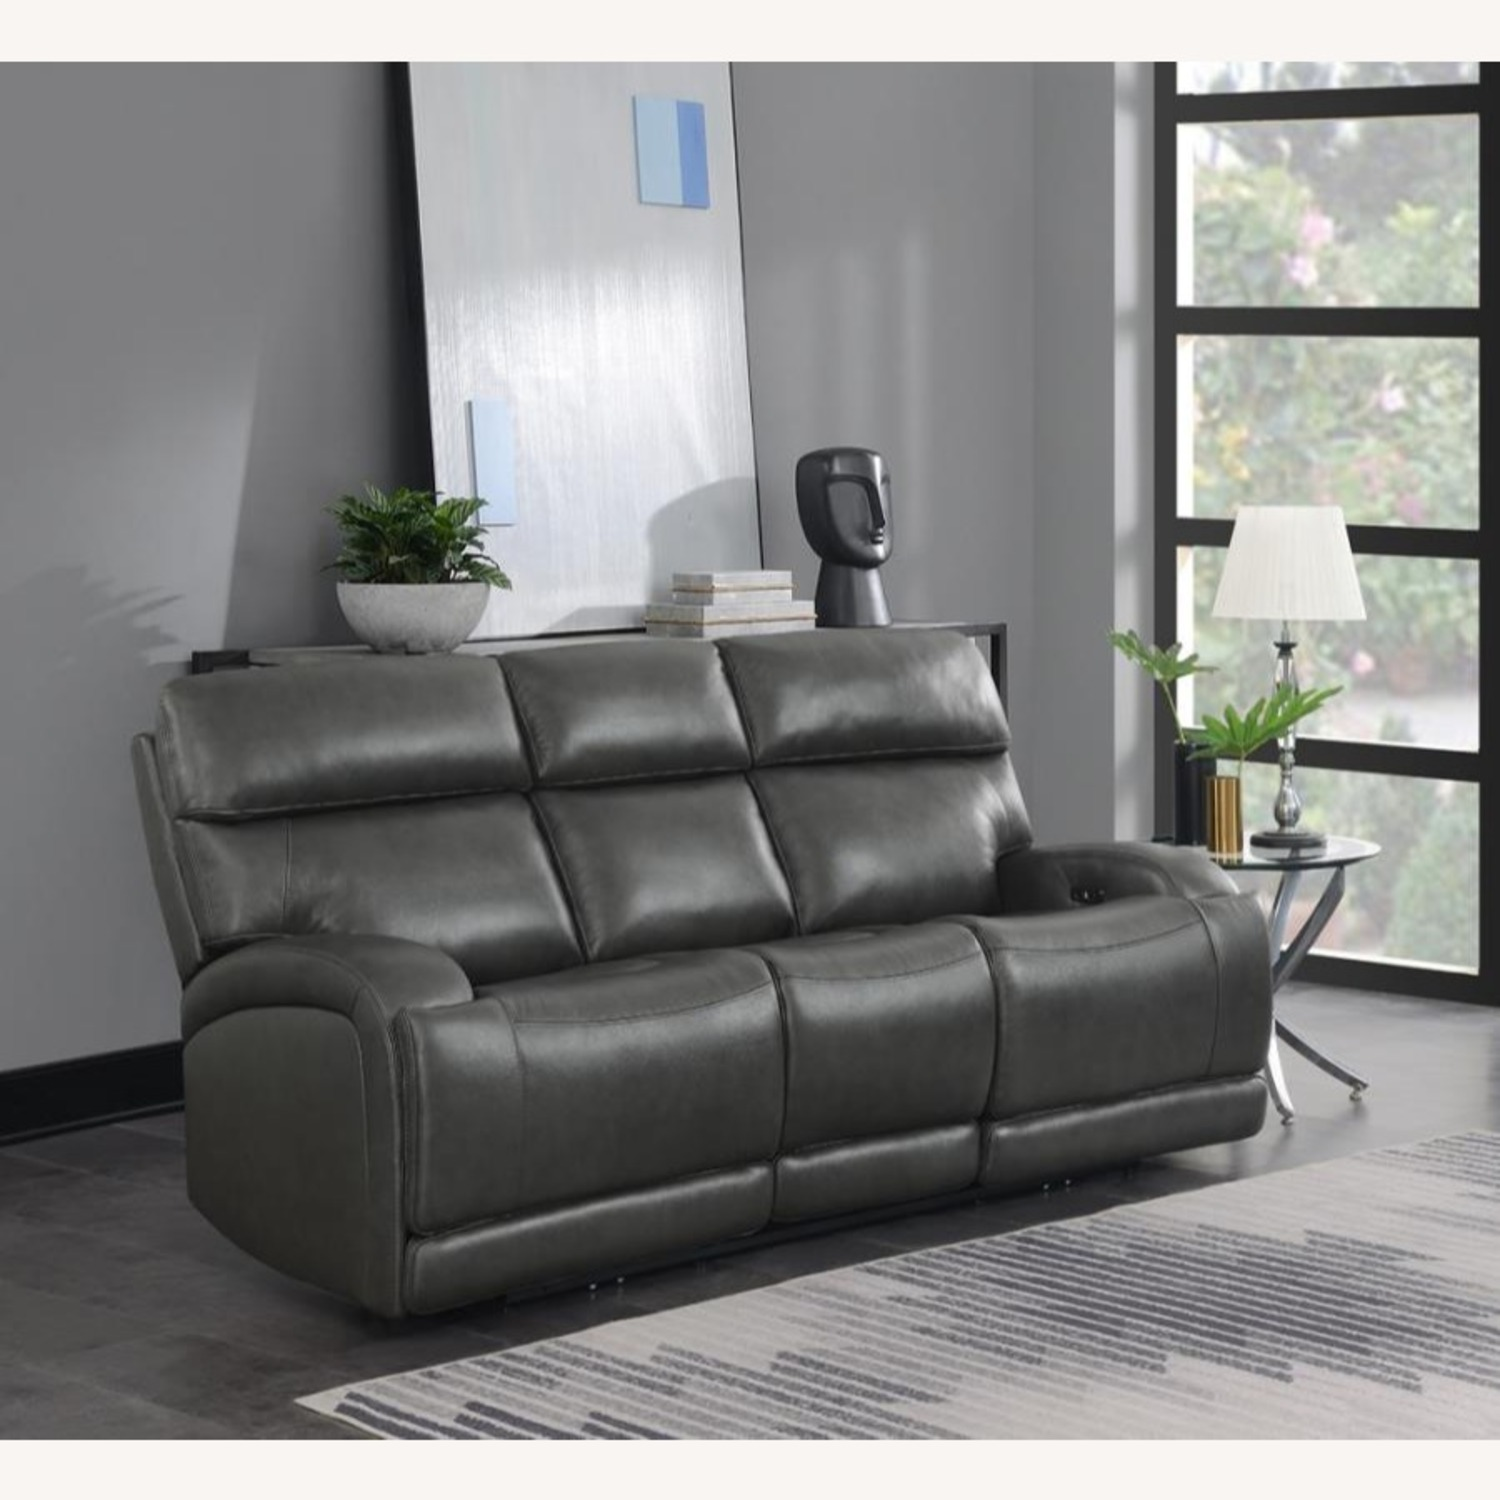 Power Sofa In Charcoal Top Grain Leather  - image-7